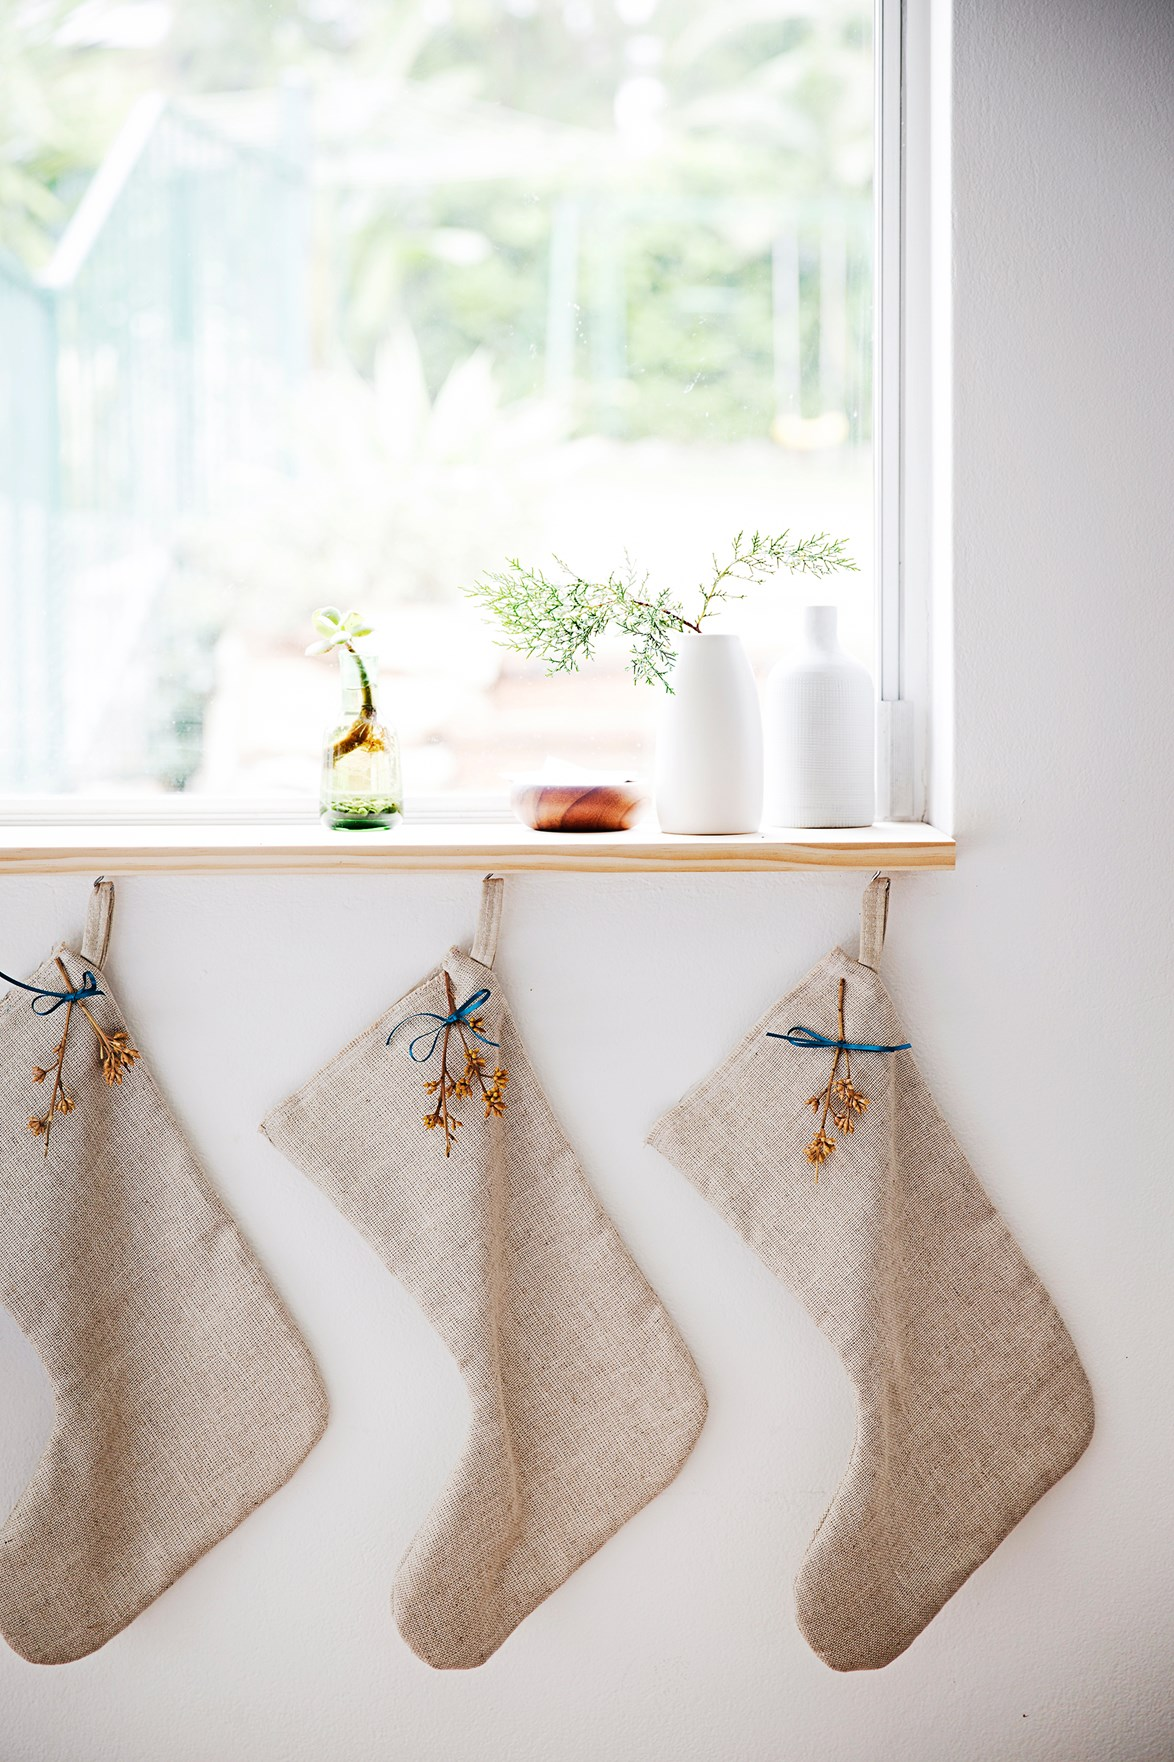 Simple sewing is all that's required here, plus a sprig of festive foliage.